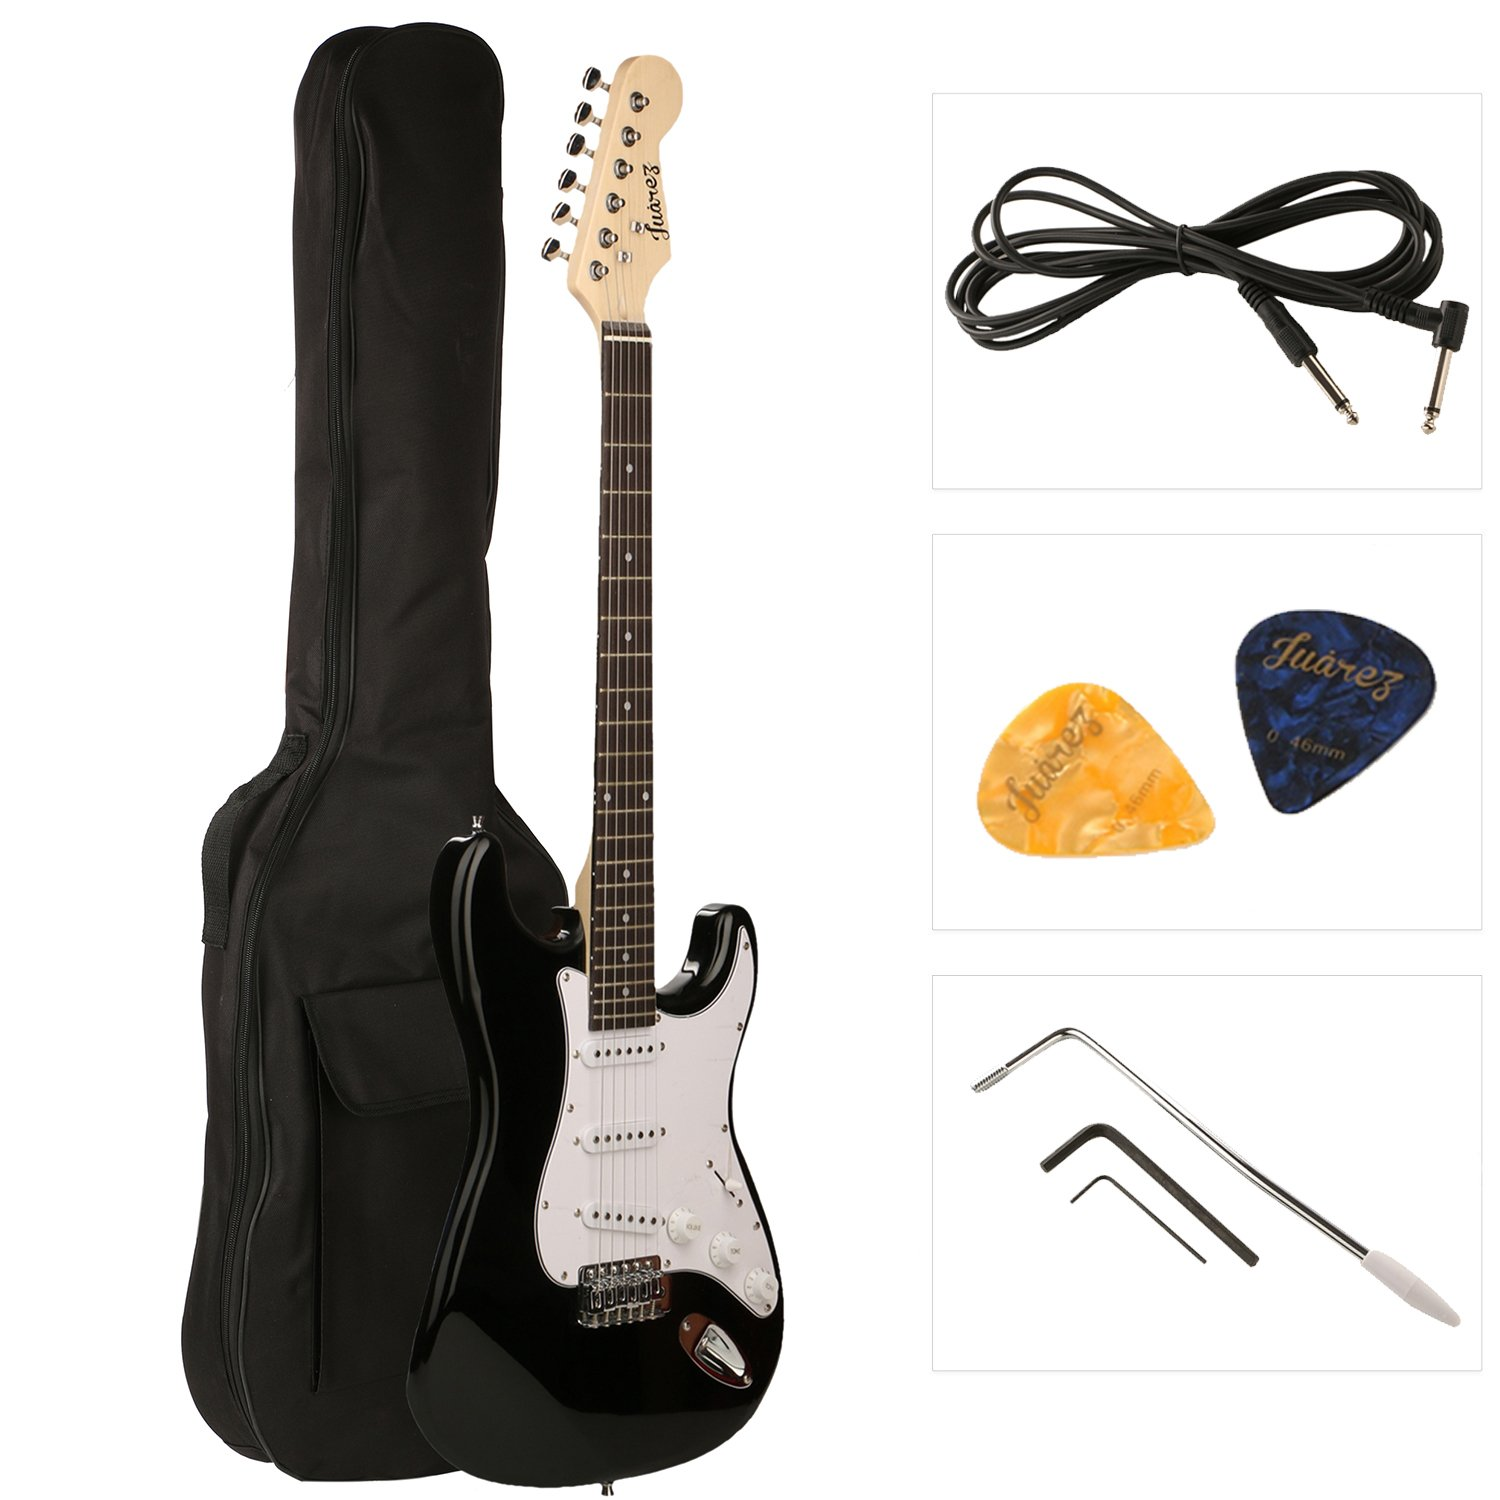 Juarez JRZ-ST01 6-String Electric Guitar, Right Handed,